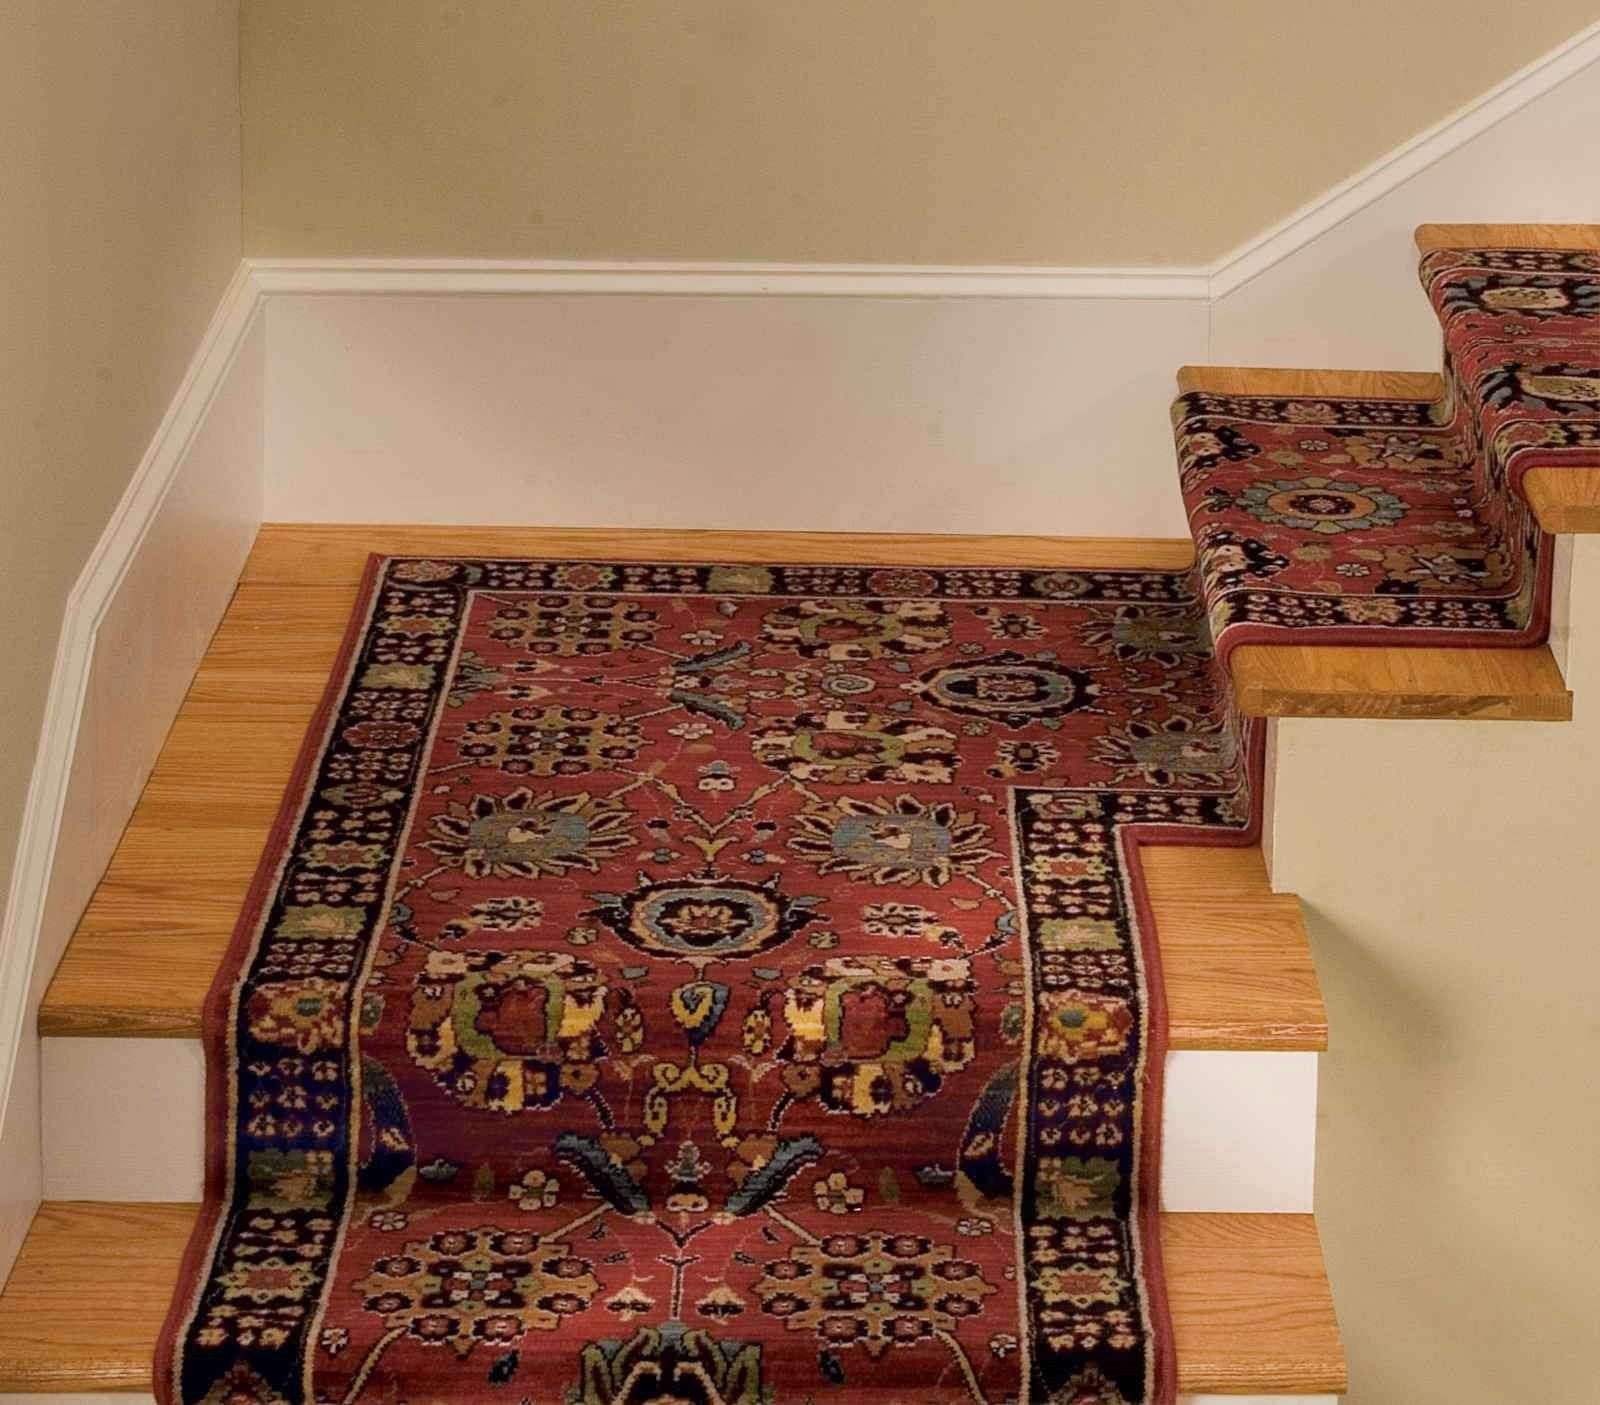 Staircase Tread Rugs Roll Rug Runner Area Rugs Stair Treads Inside NonSkid Solid StairTread Rugs (Image 15 of 15)